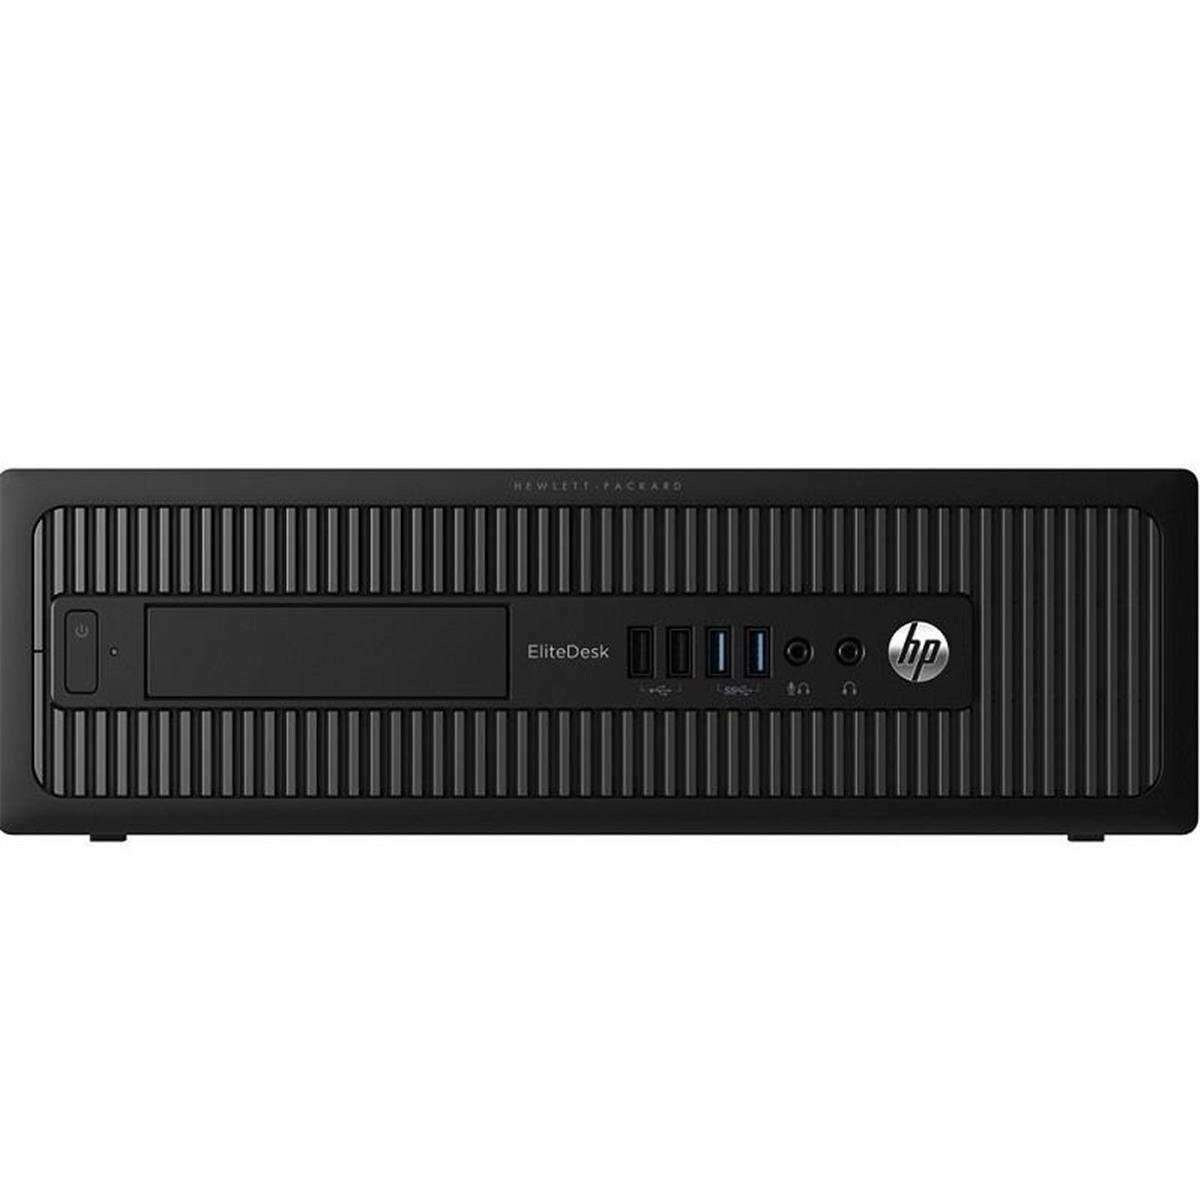 Computador HP Elitedesk 800 G2 SFF I5-6500 4GB 500GB WIN10